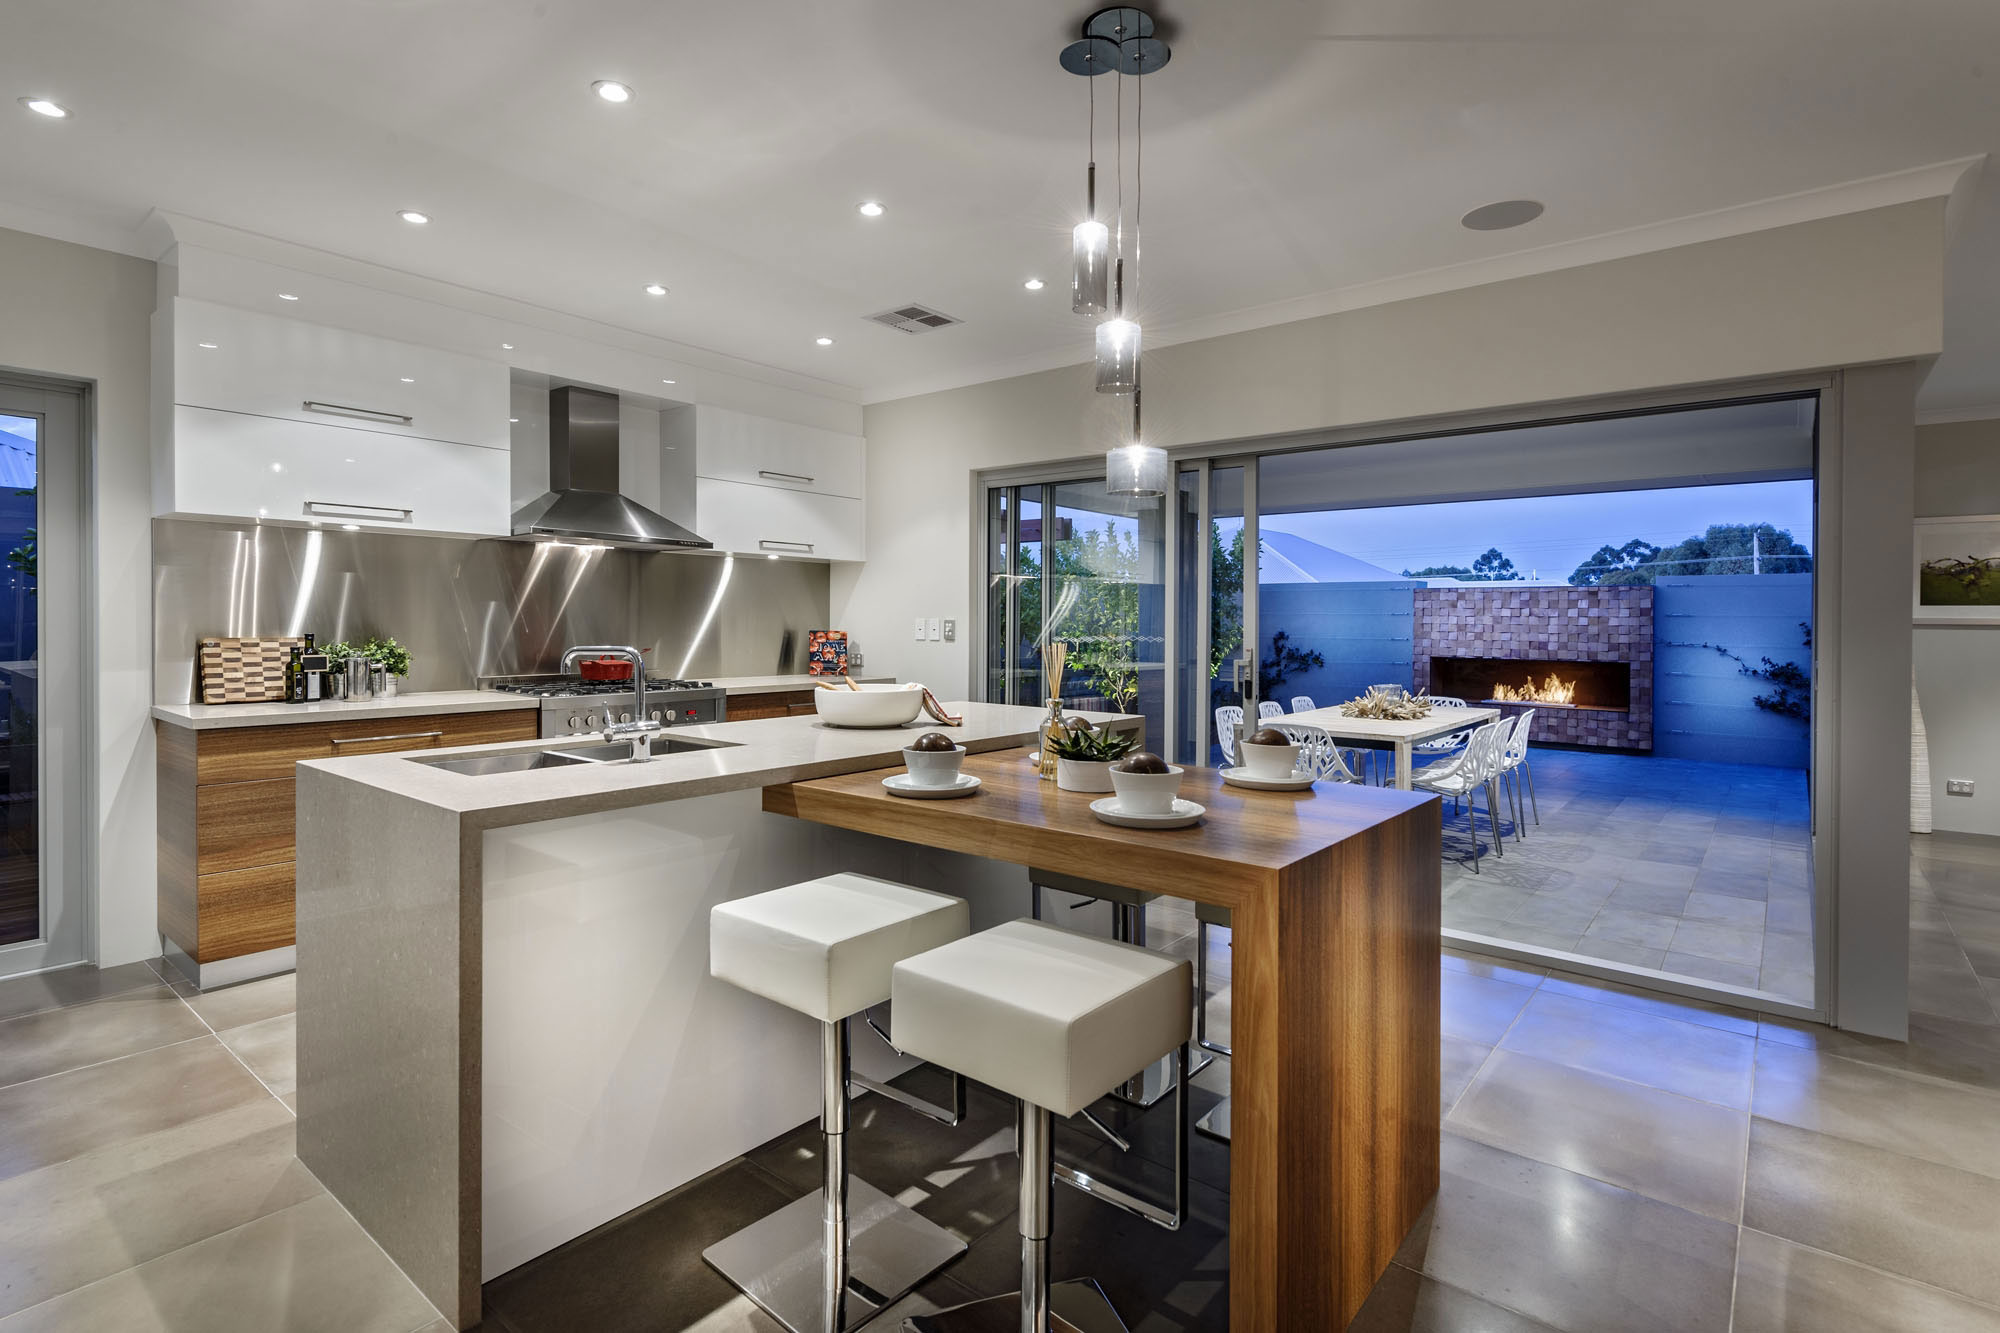 Kitchen Island, Breakfast Bar, Pendant Lighting, Glass Sliding Doors, Modern Home in Wandi, Perth